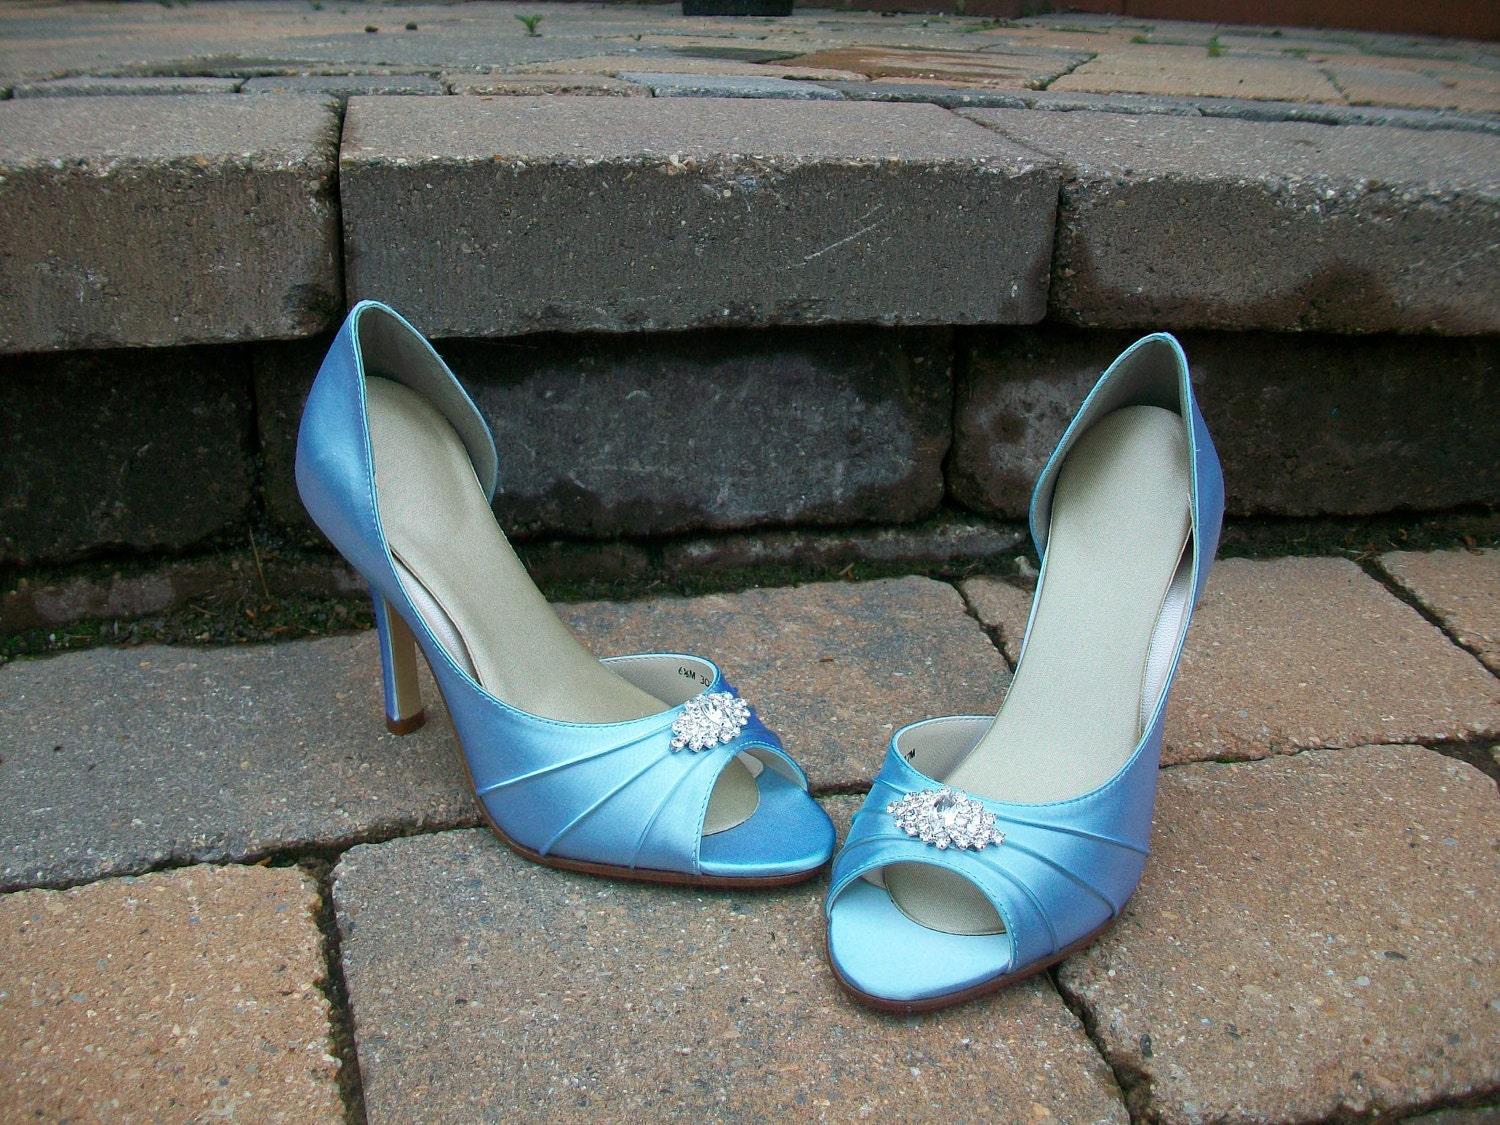 Baby Blue 3.5 Heel  Satin Shoes With Rhinestones Available In Over 100 Colors To Choose From